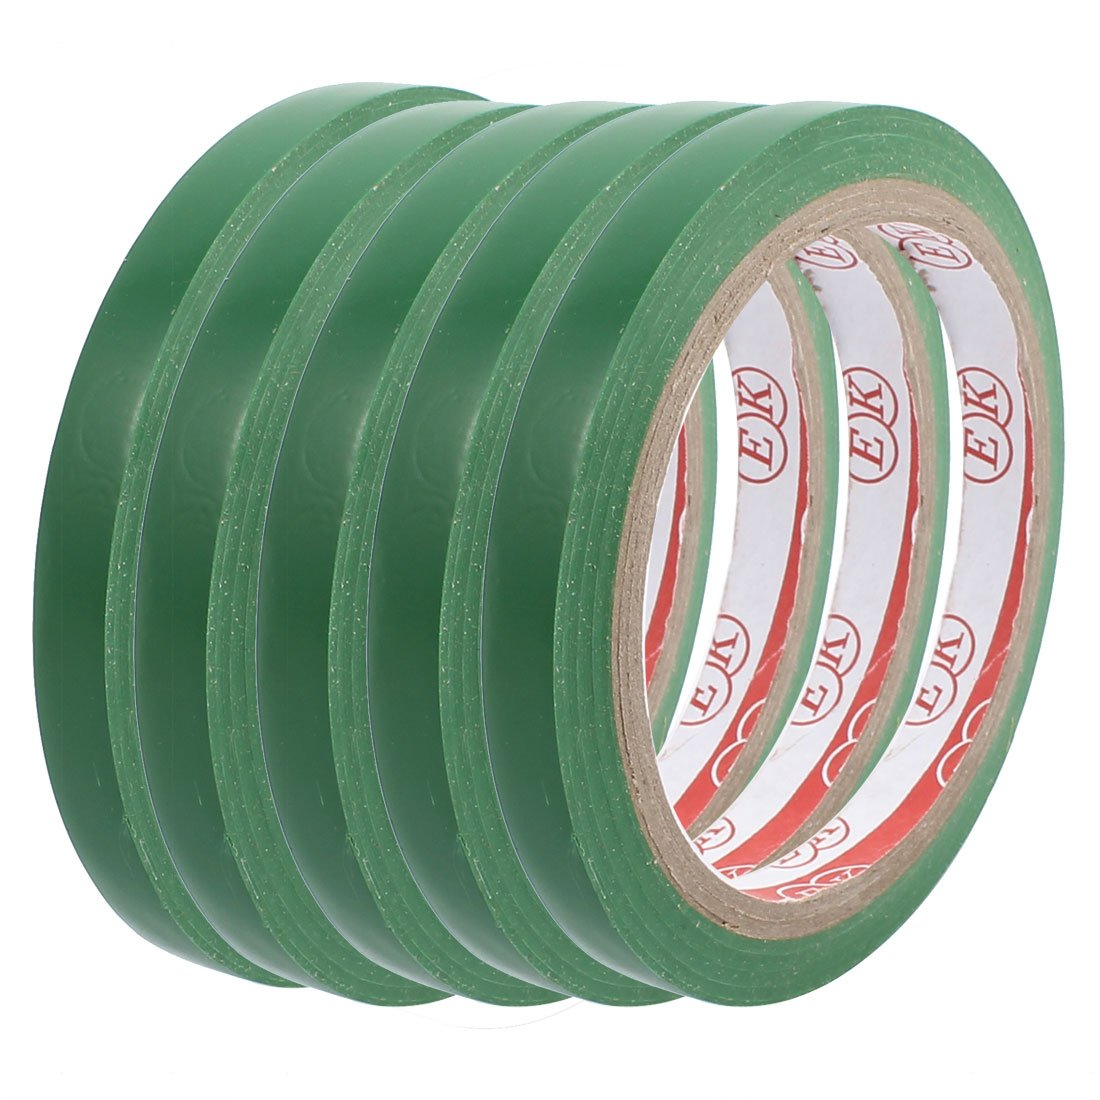 uxcell 5pcs 1cm Width Safety Caution Warning Sticker Adhesive Tape 17M Length Green